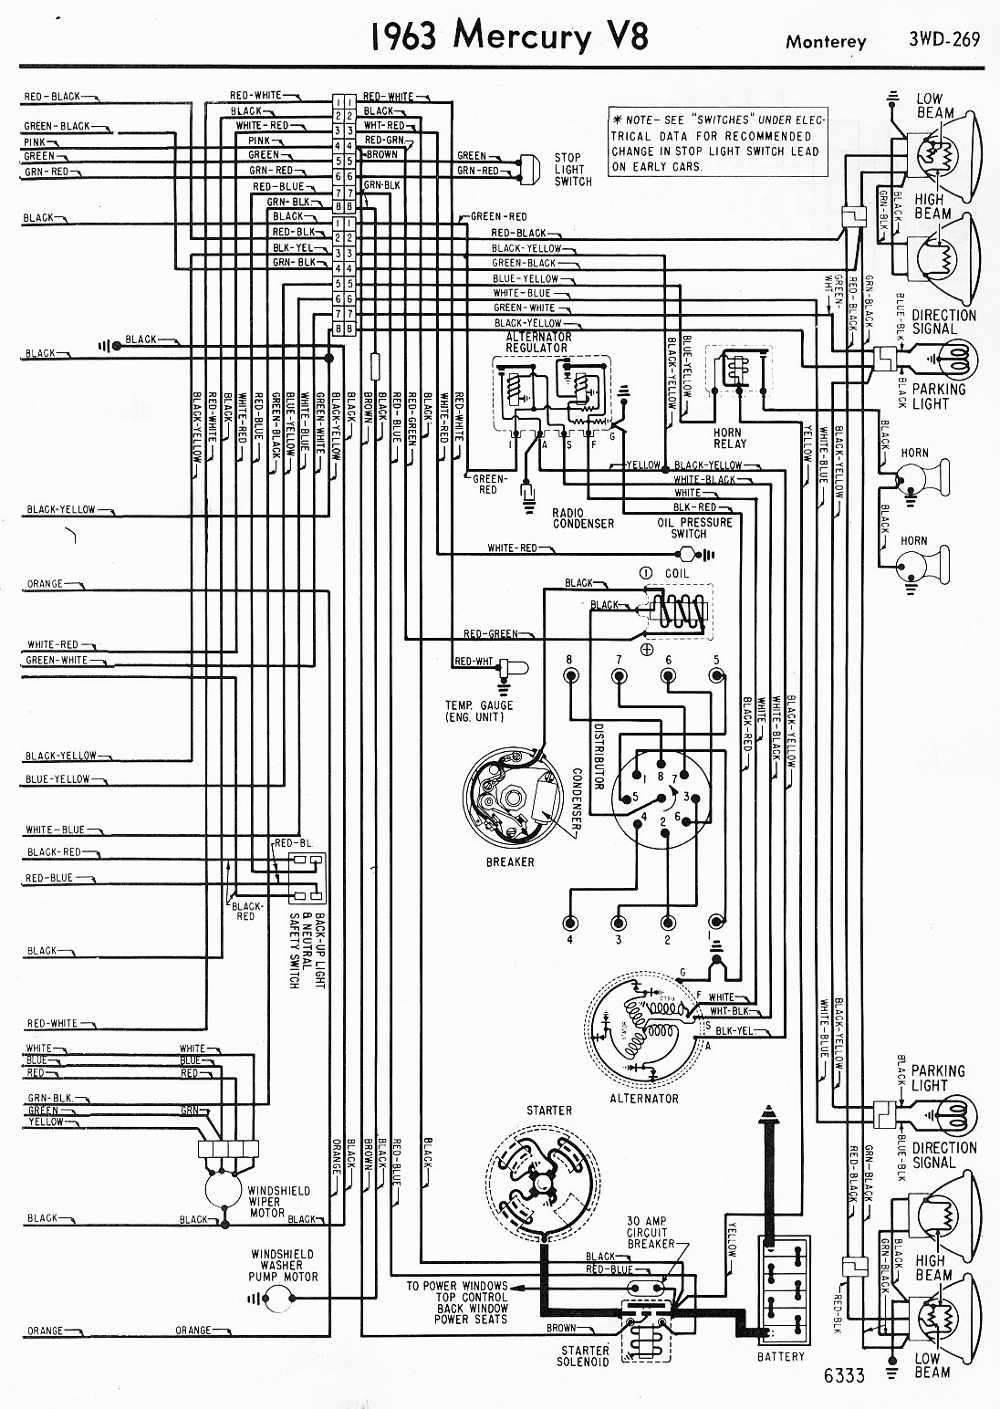 1966 Mercury Wiring Diagram - Wiring Diagrams Schematic on mercury white ignition switch wiring diagram, mercury key switch wiring diagram, mercury marine kill switch, mercury outboard control wiring diagram, mercury marine ignition switch connector,